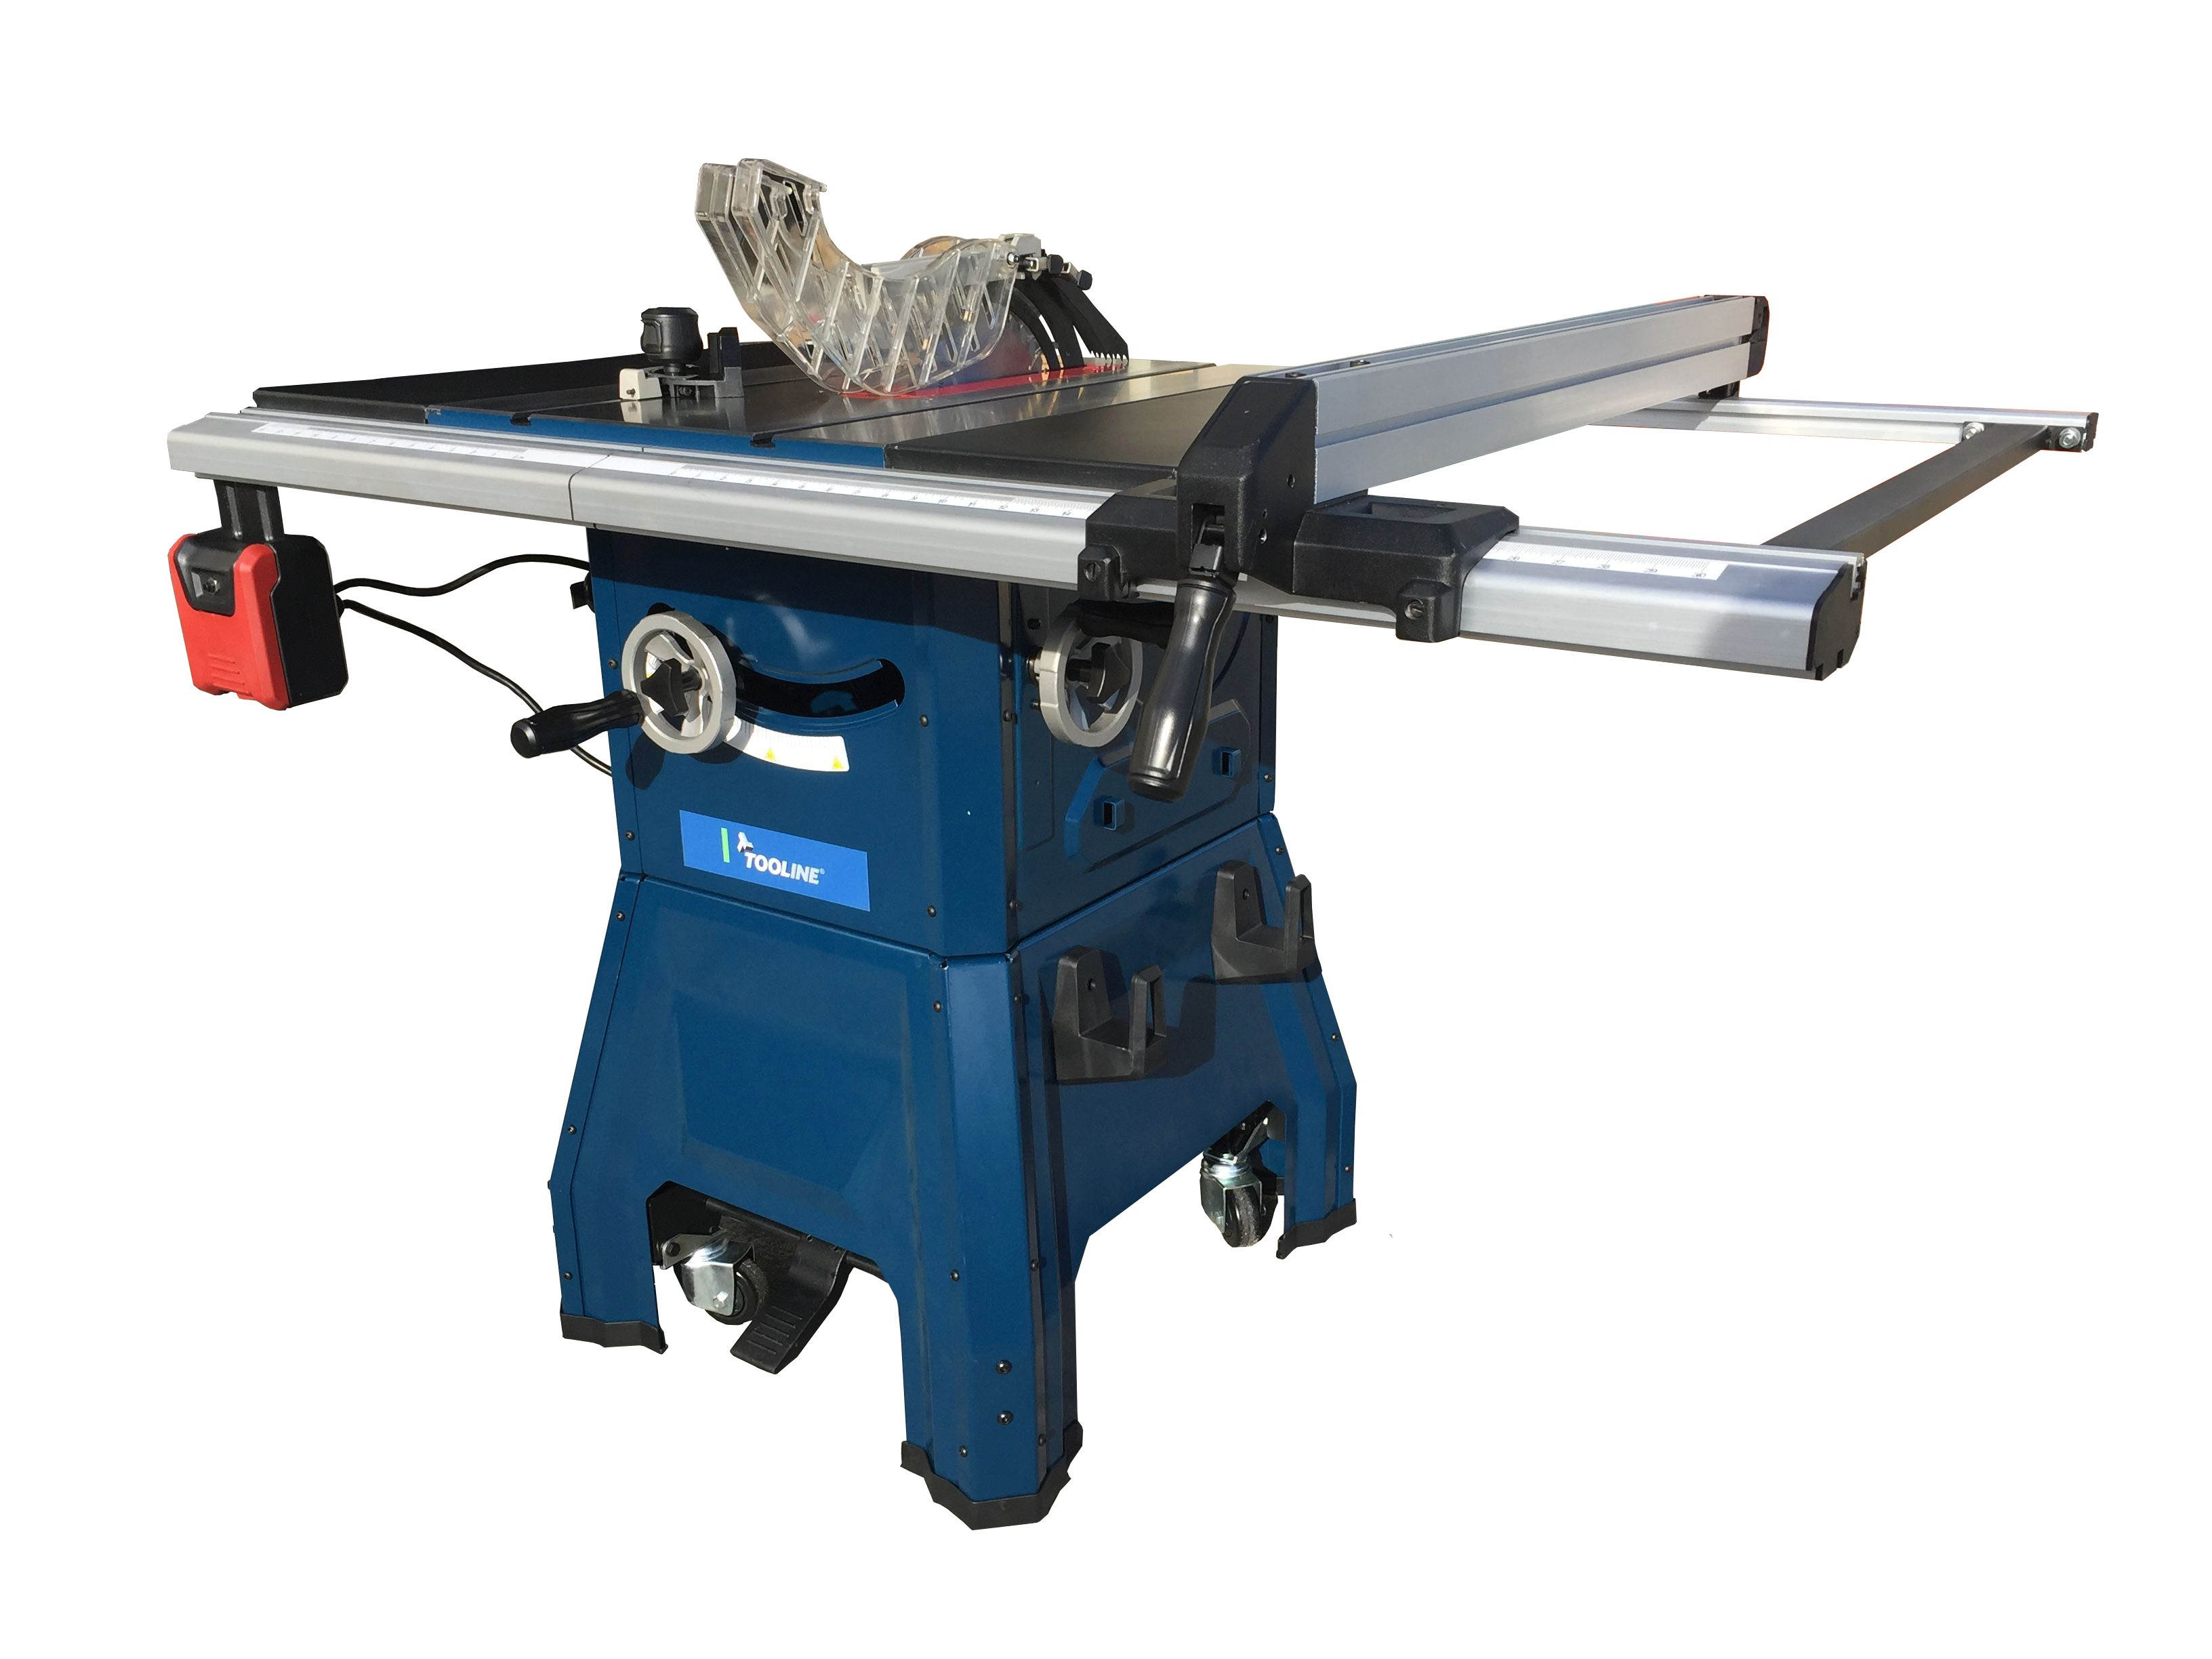 Tooline TS255 254mm Table Saw - Tooline Limited